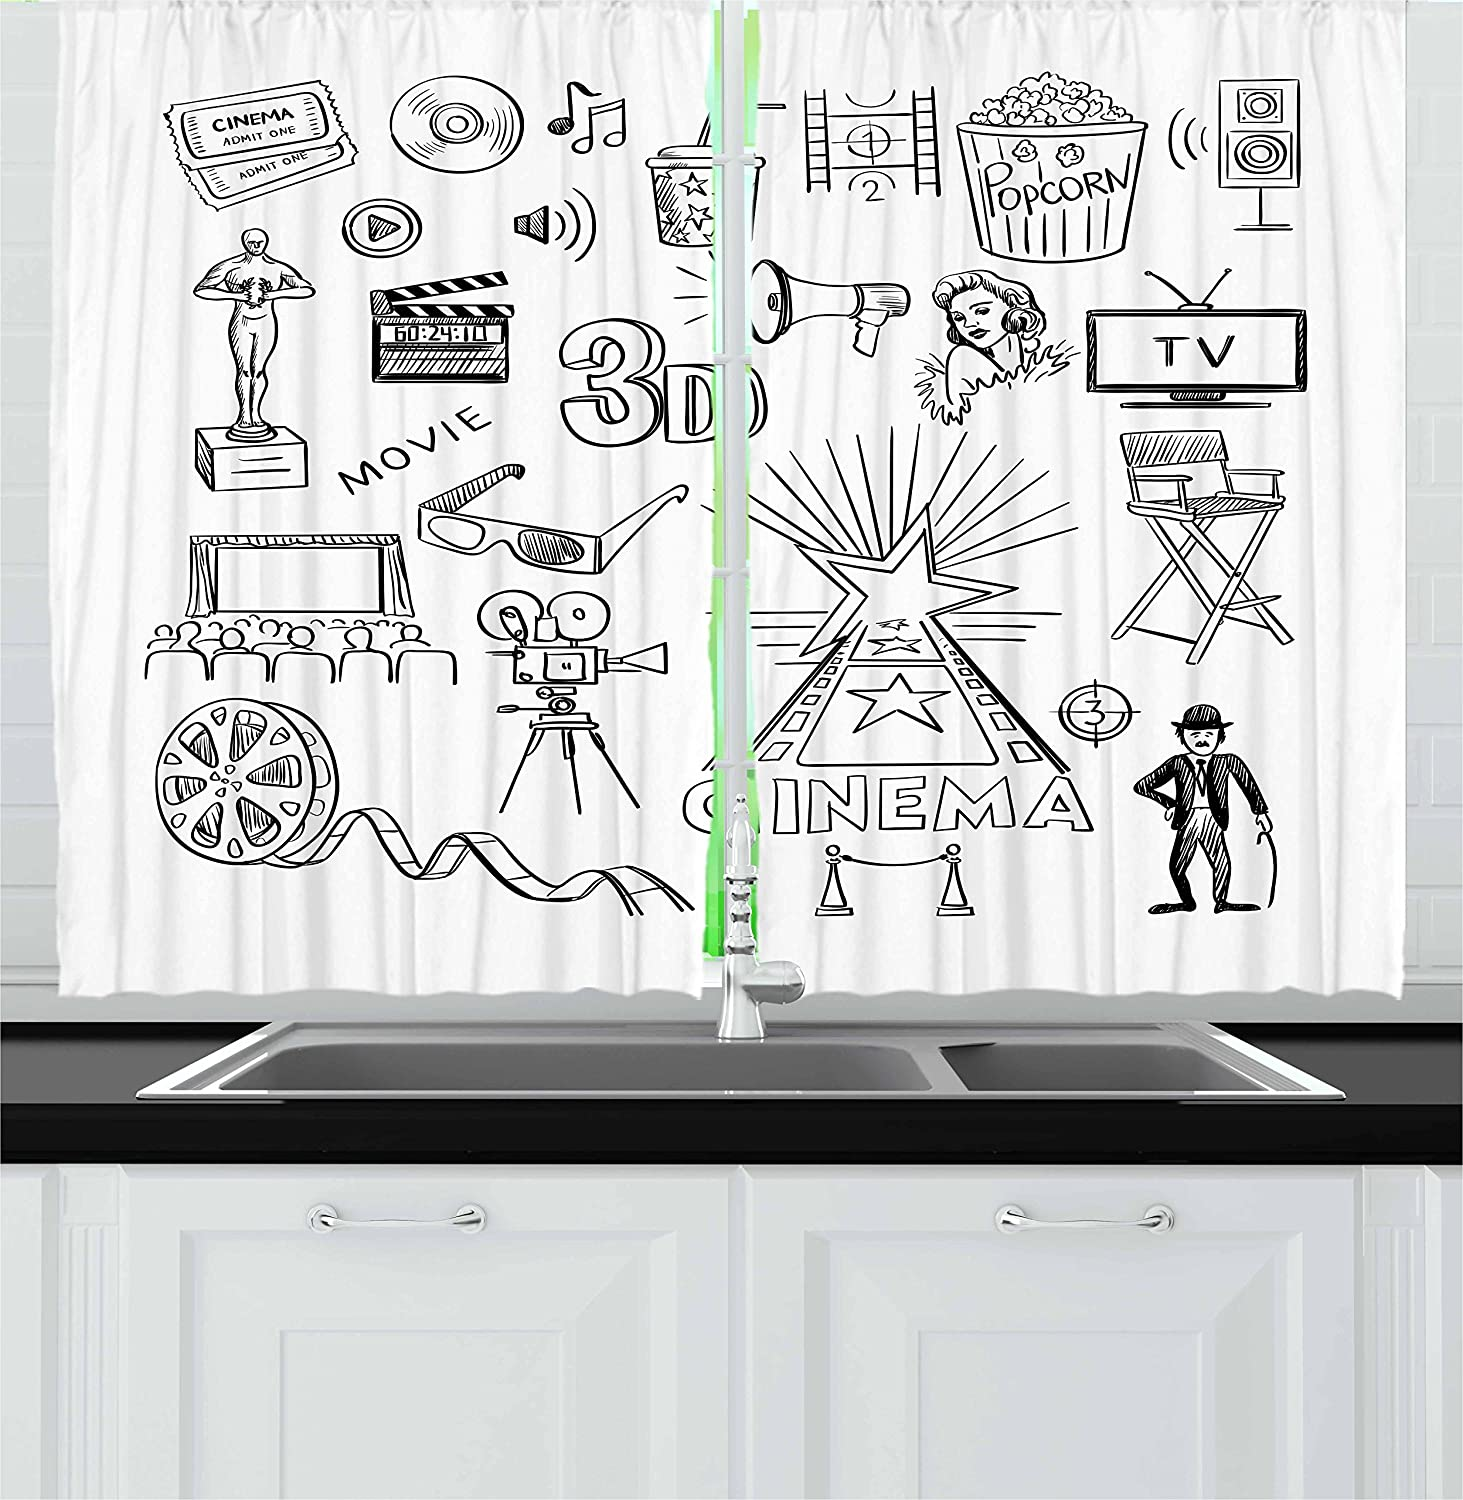 Amazon Com Ambesonne Movie Theater Kitchen Curtains Hand Drawn Of Hollywood Oscar 3d Glasses Sketch Style Arrangement Window Drapes 2 Panel Set For Kitchen Cafe Decor 55 X 39 Black White Home